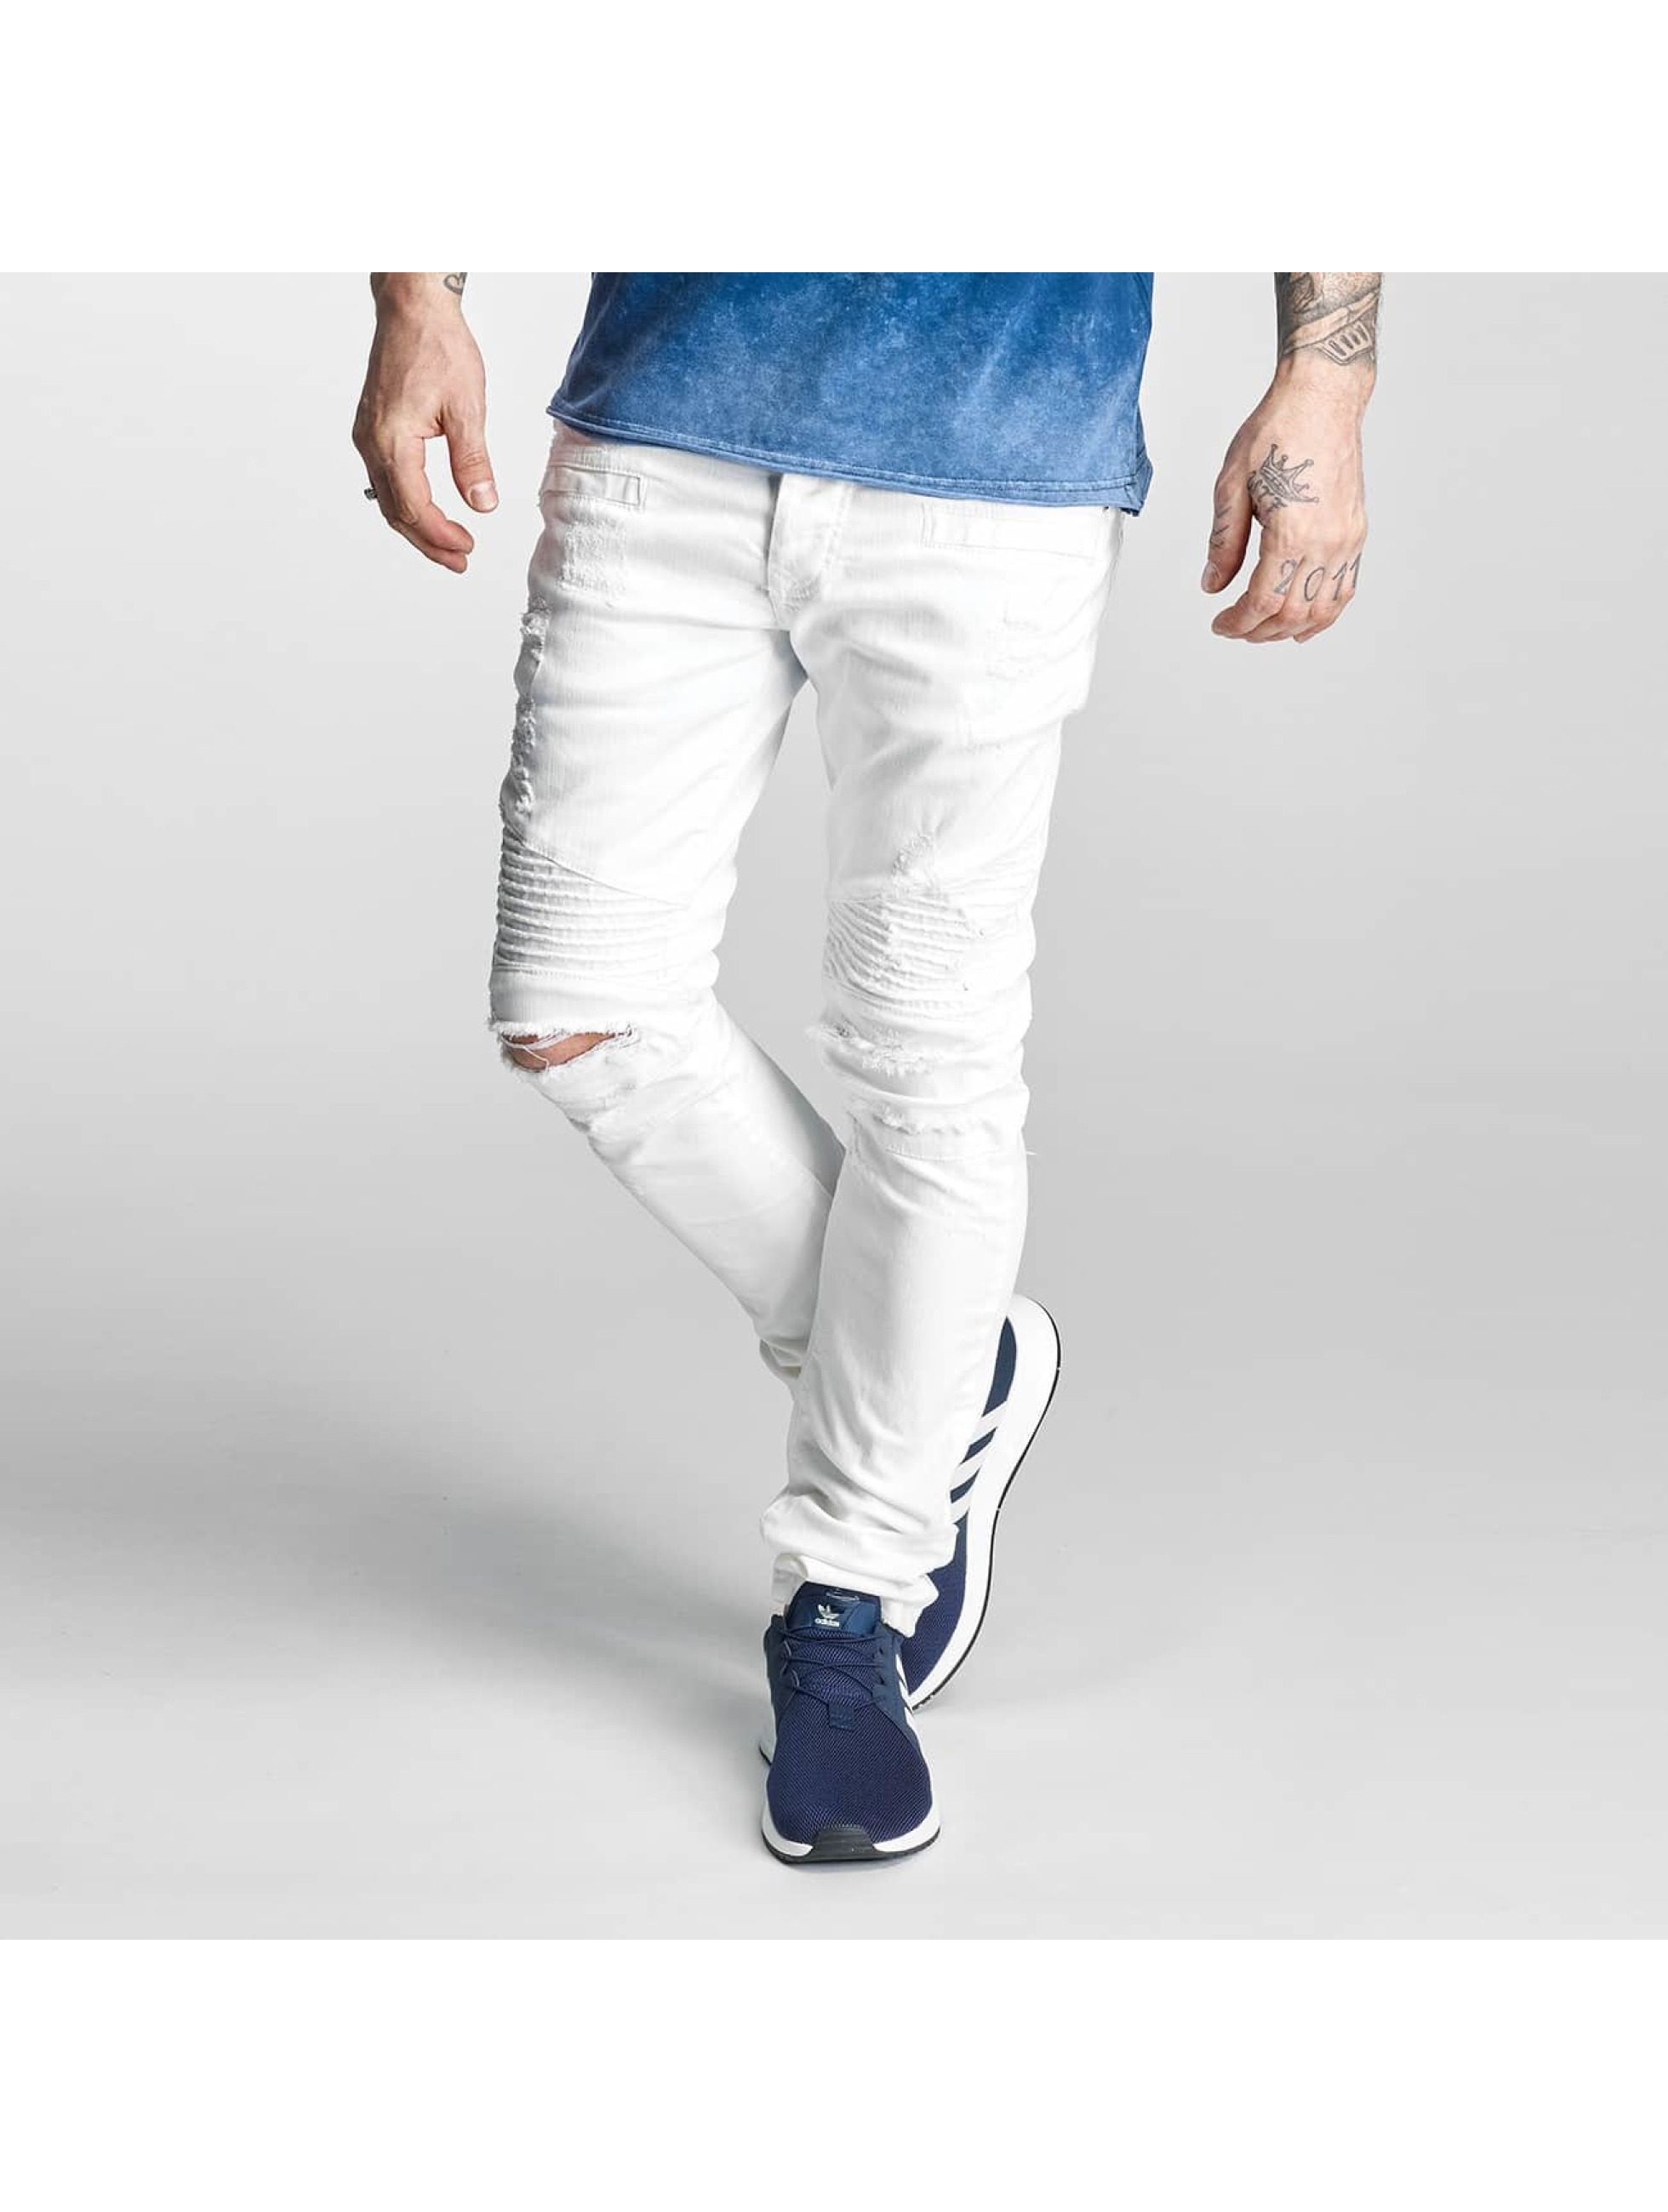 Red-Bridge-Uomini-Jeans-Jeans-slim-fit-Ripped-Biker